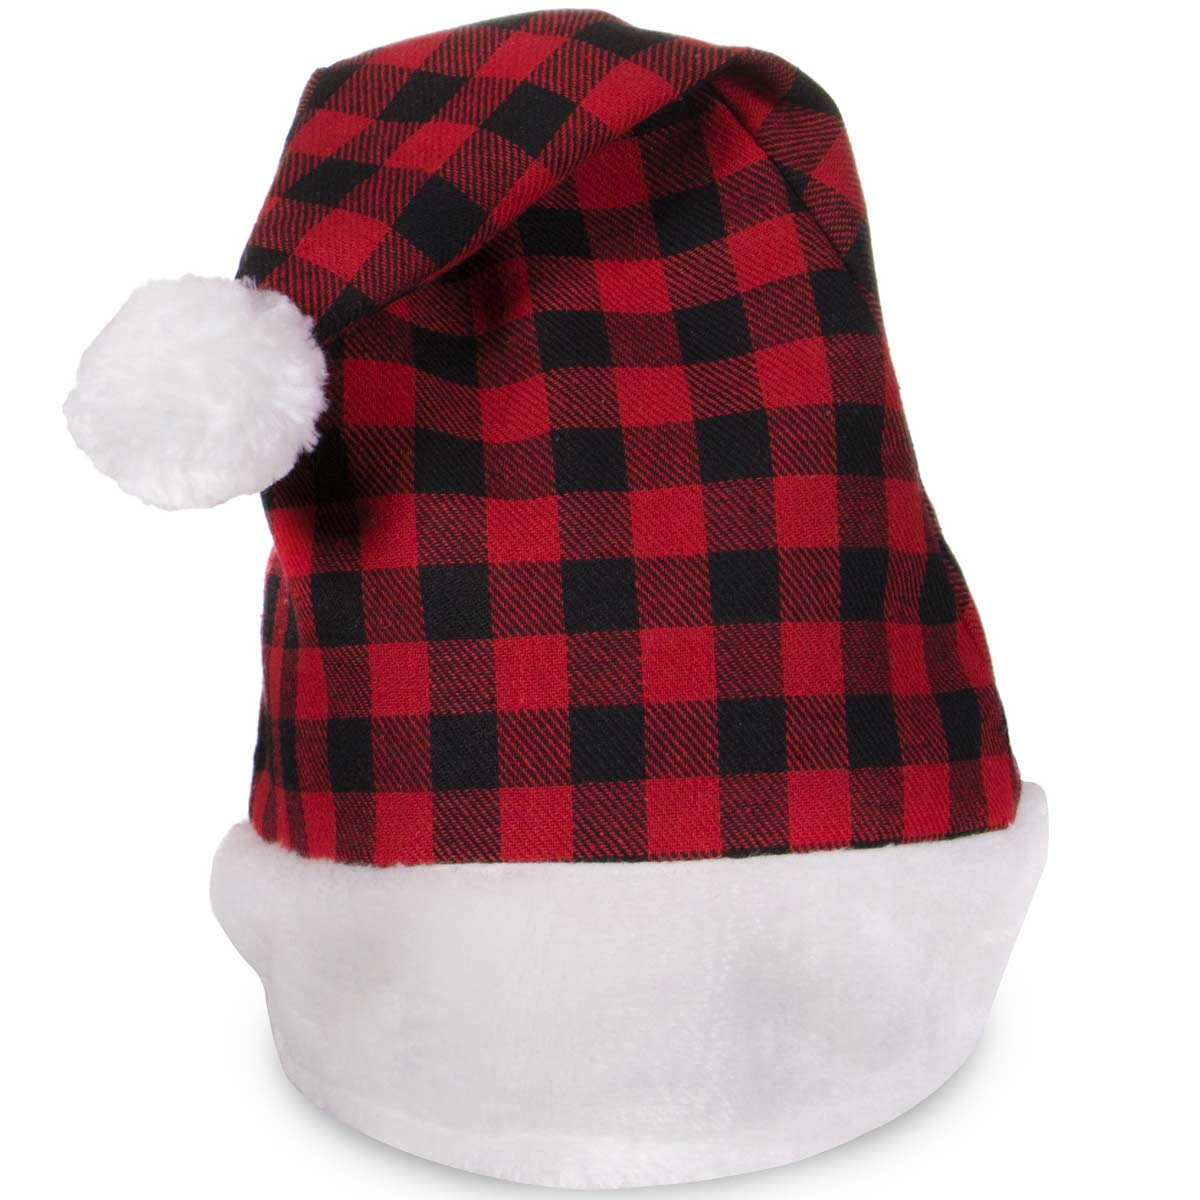 Embroidered Red Plaid Plush Santa Hats